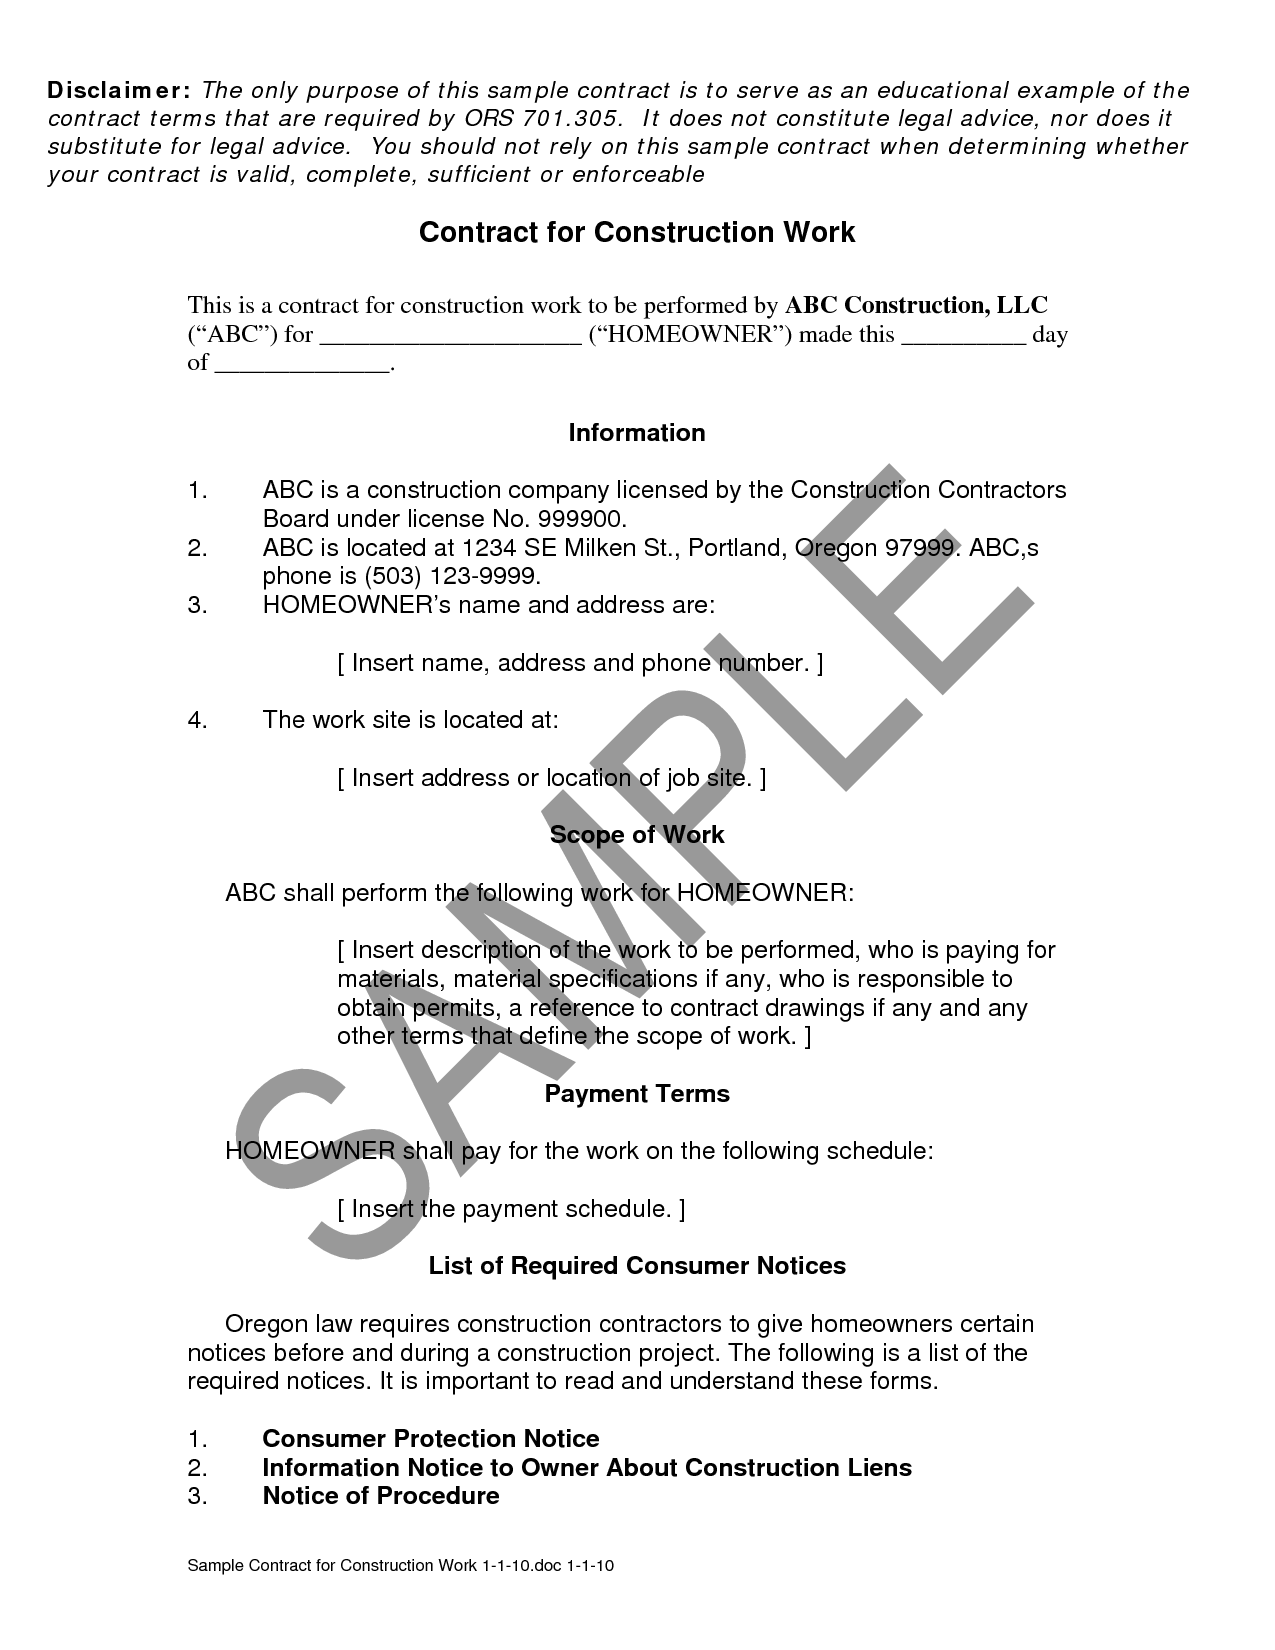 Construction Company Contract Template Construction Contract